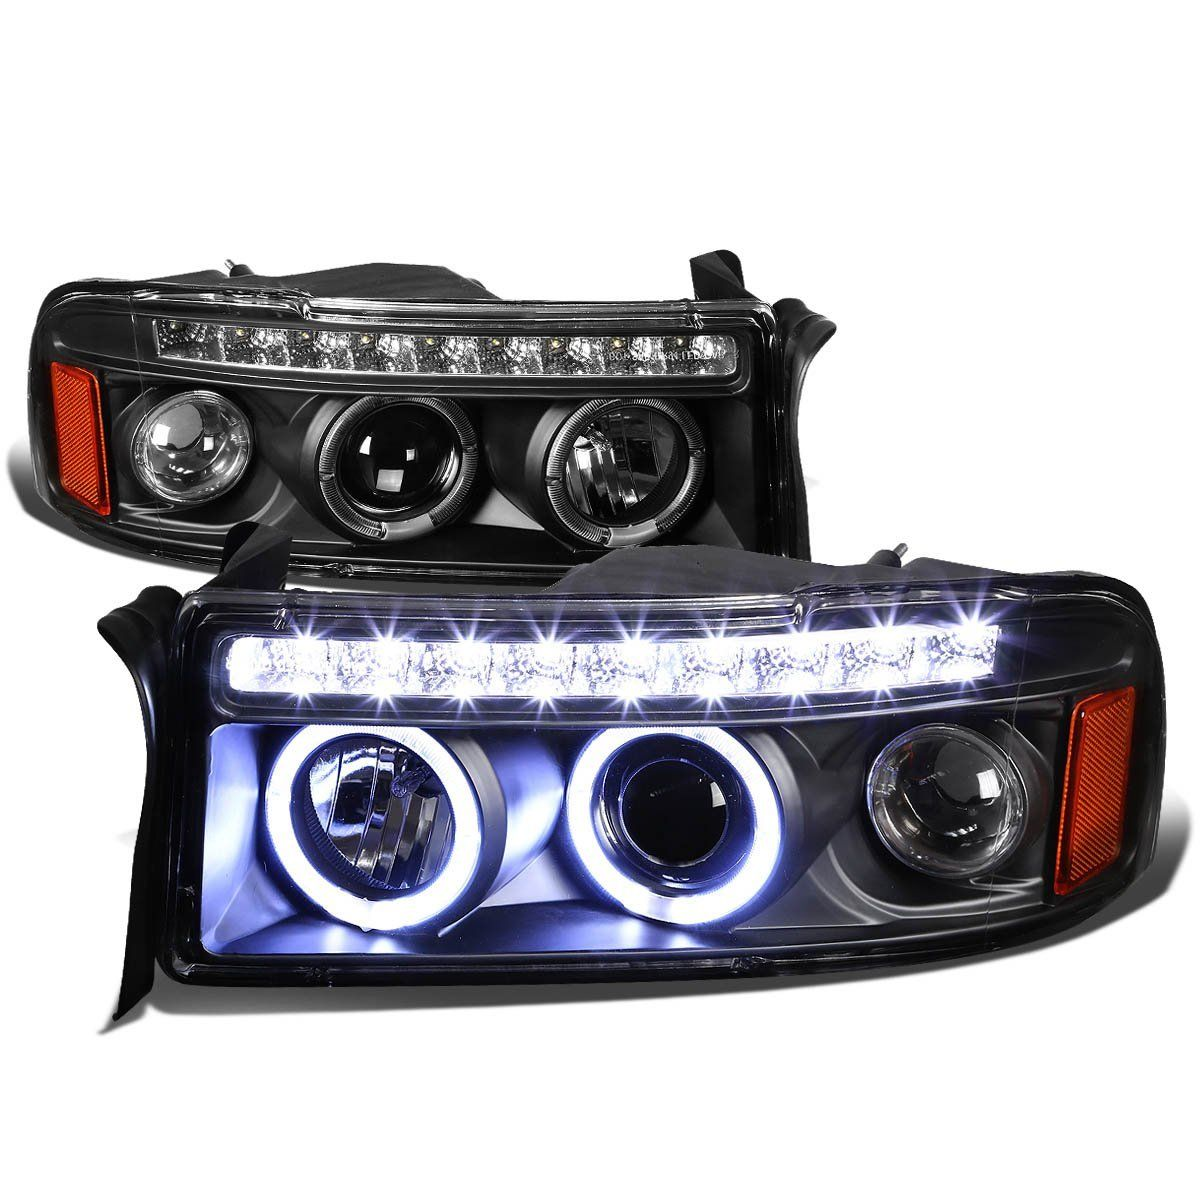 94 01 Dodge Ram 1500 2500 3500 Angel Eye Halo Led Projector Headlights Black Dodge Ram 1500 Dodge Ram 2001 Dodge Ram 1500